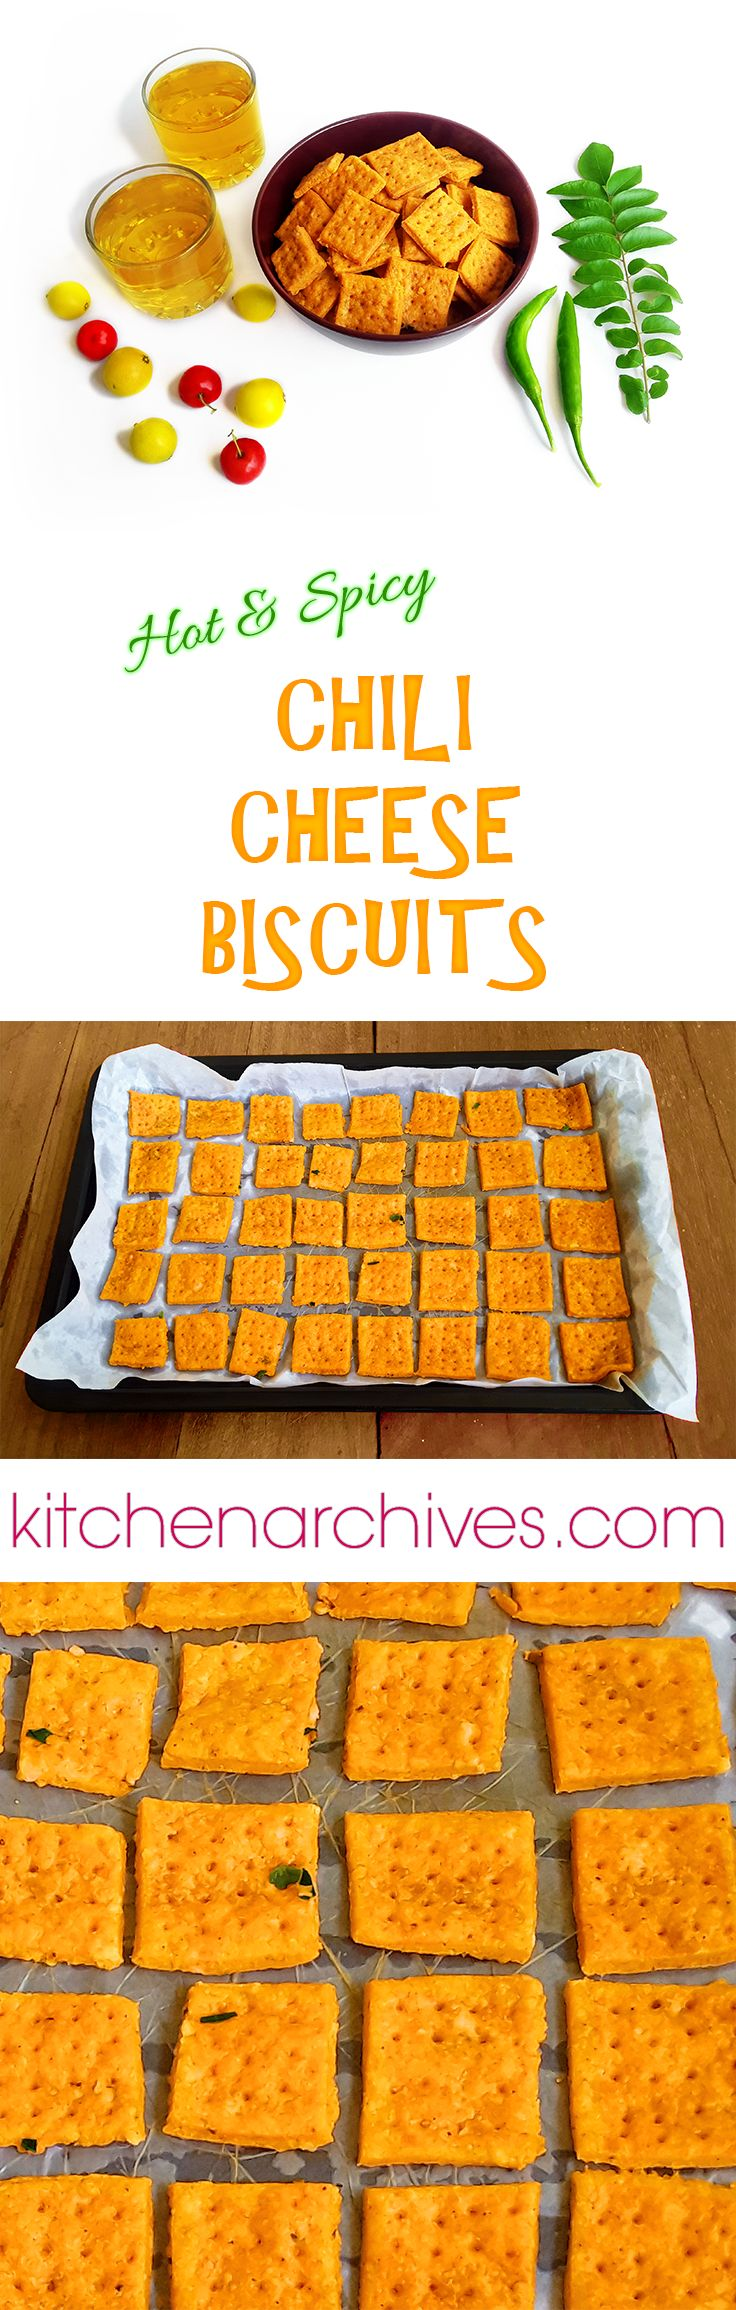 Save Chili Cheese Biscuits on Pinterest